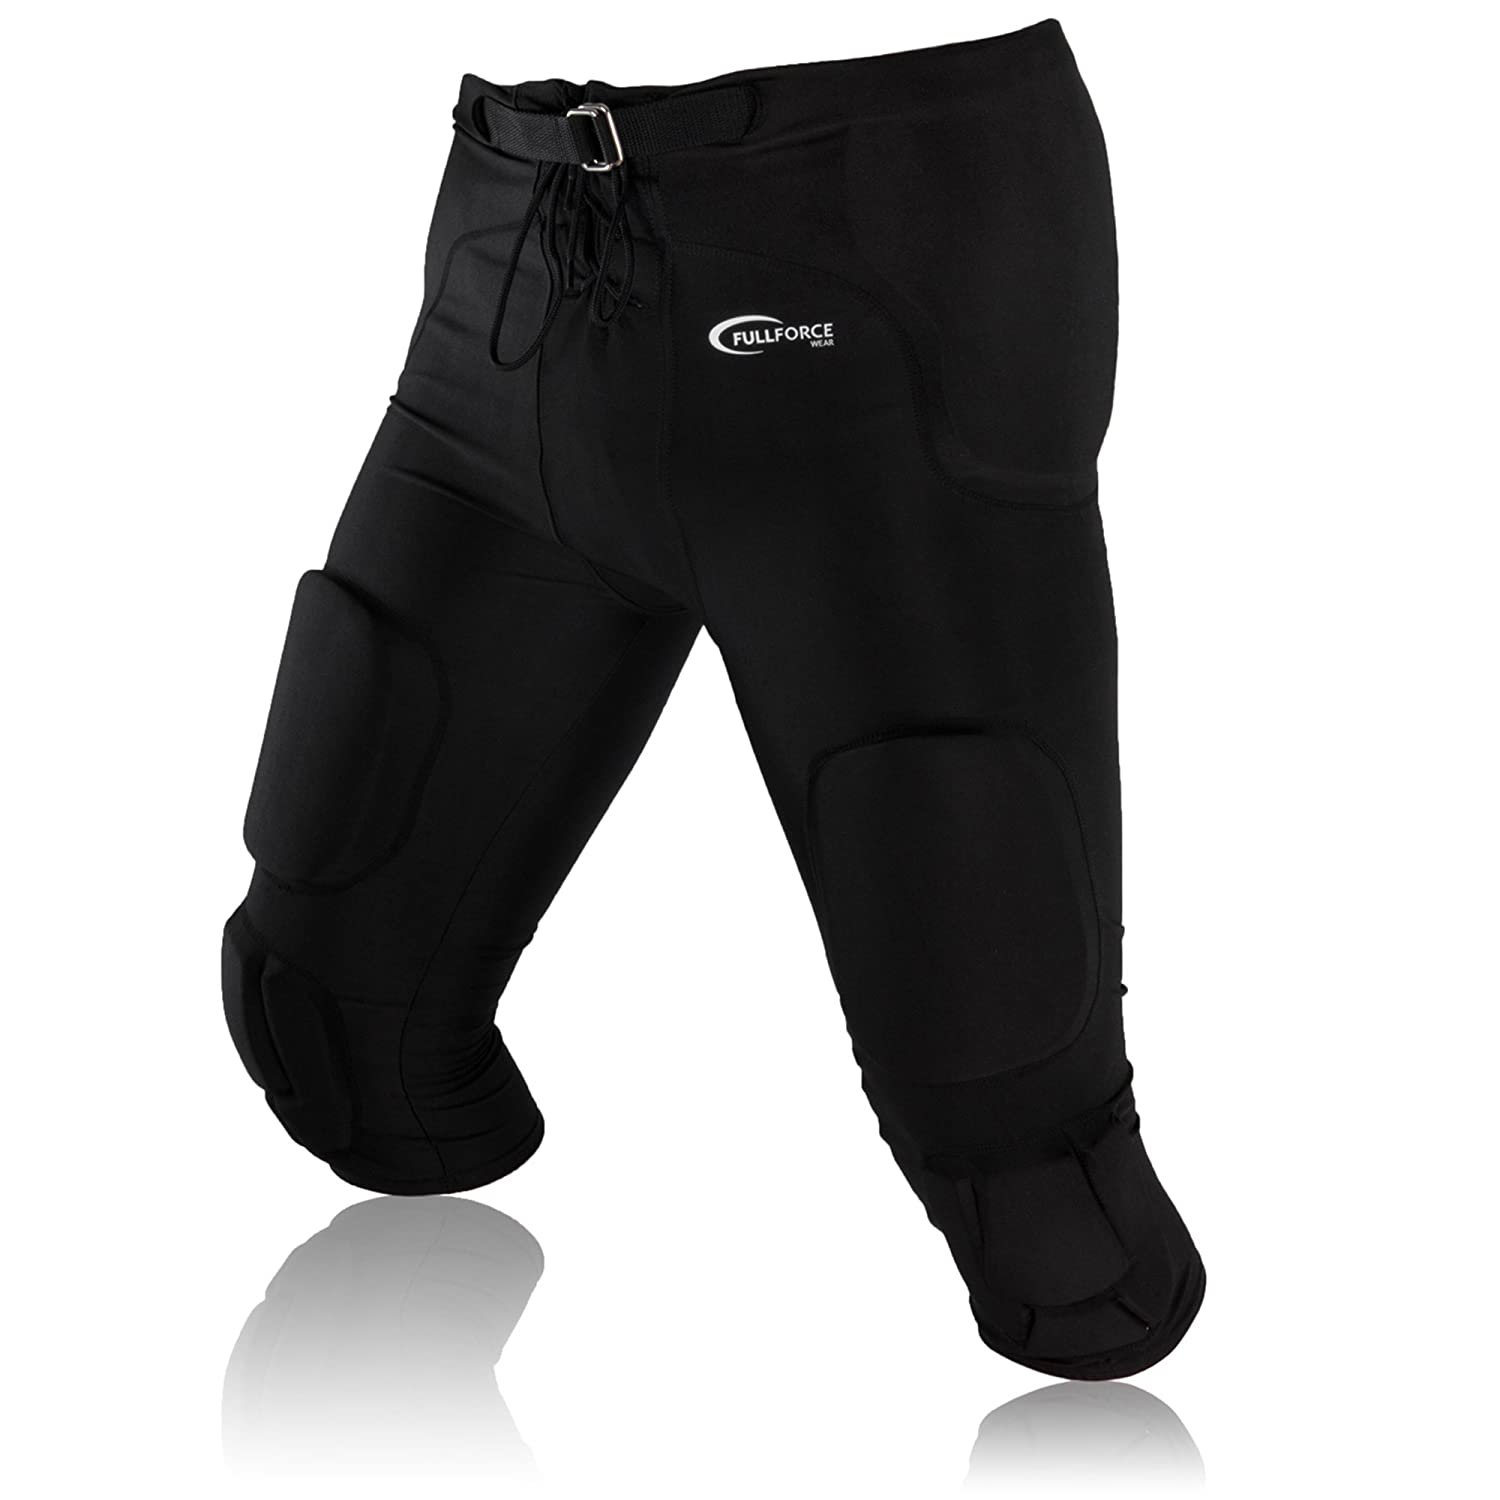 'Full Force American Football's Game Trouser Stretch with 7Integrated Pocket Pad All In One, Black, YXS–2XL YXS-2XL Full Force Wear